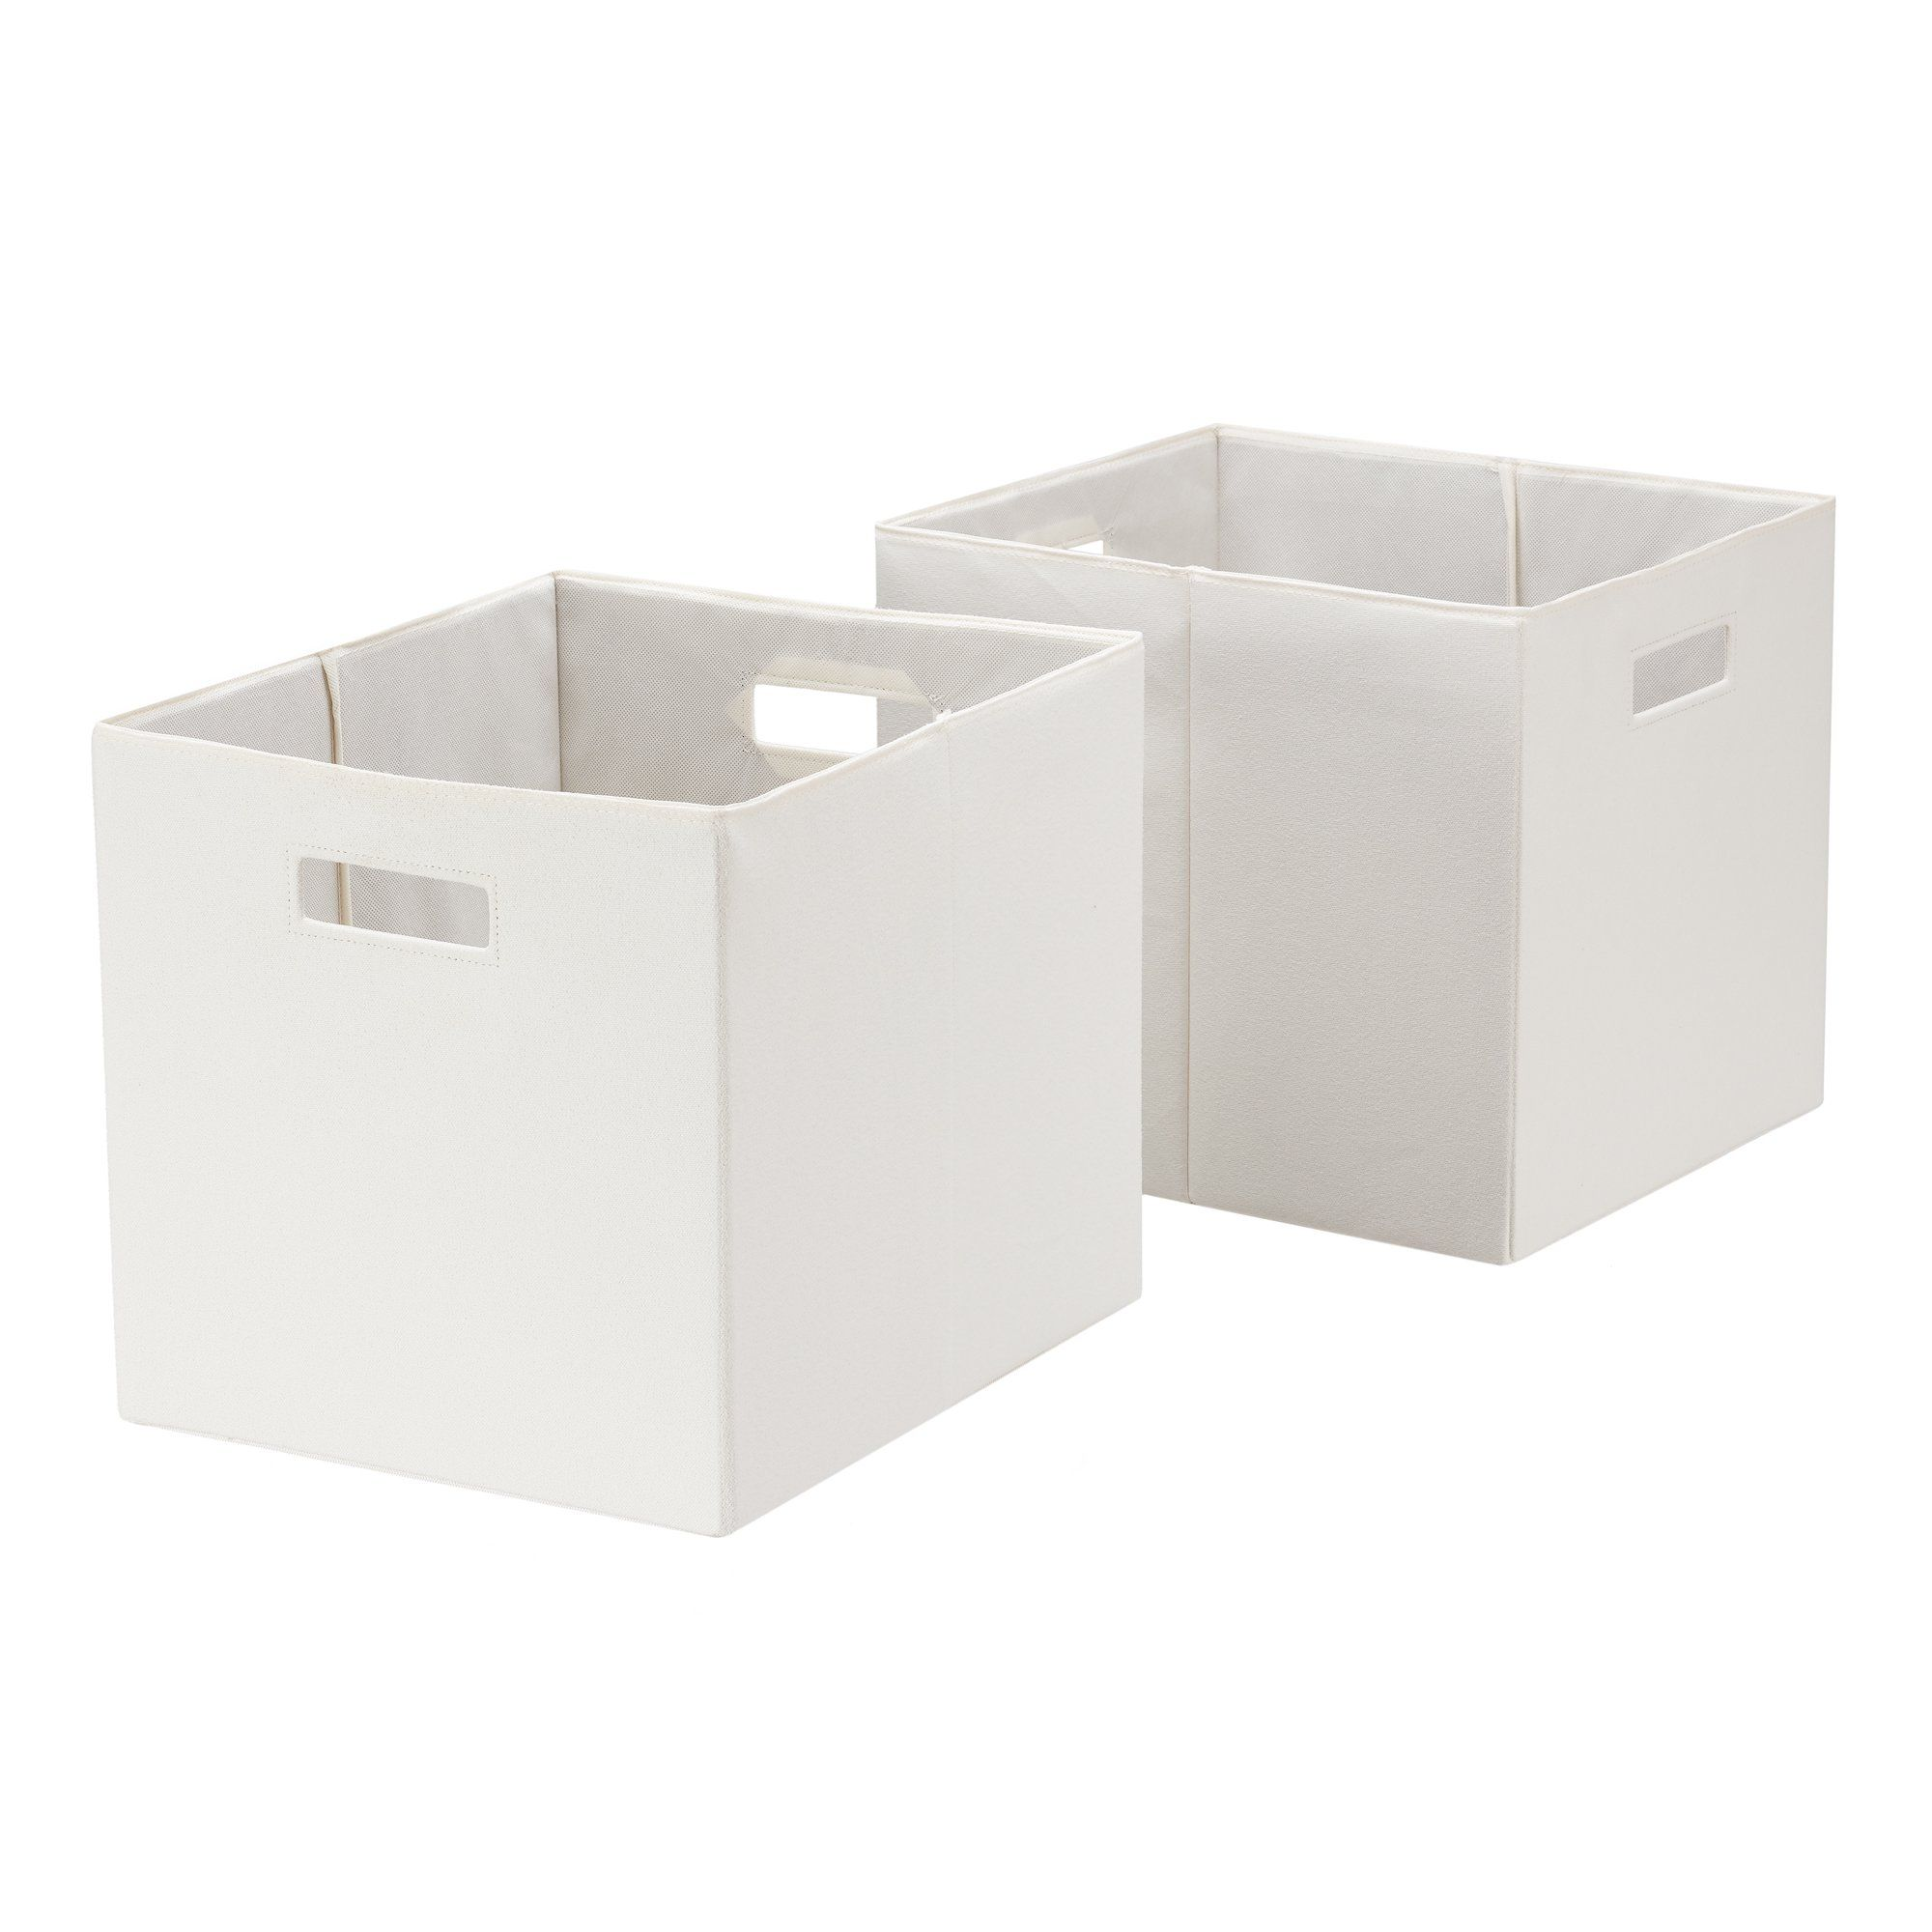 Better Homes Gardens Fabric Cube Storage Bins 12 75 X 12 75 Set Of 2 Vanilla Dream Walmart Com In 2020 Cube Storage Storage Bins Cube Storage Bins